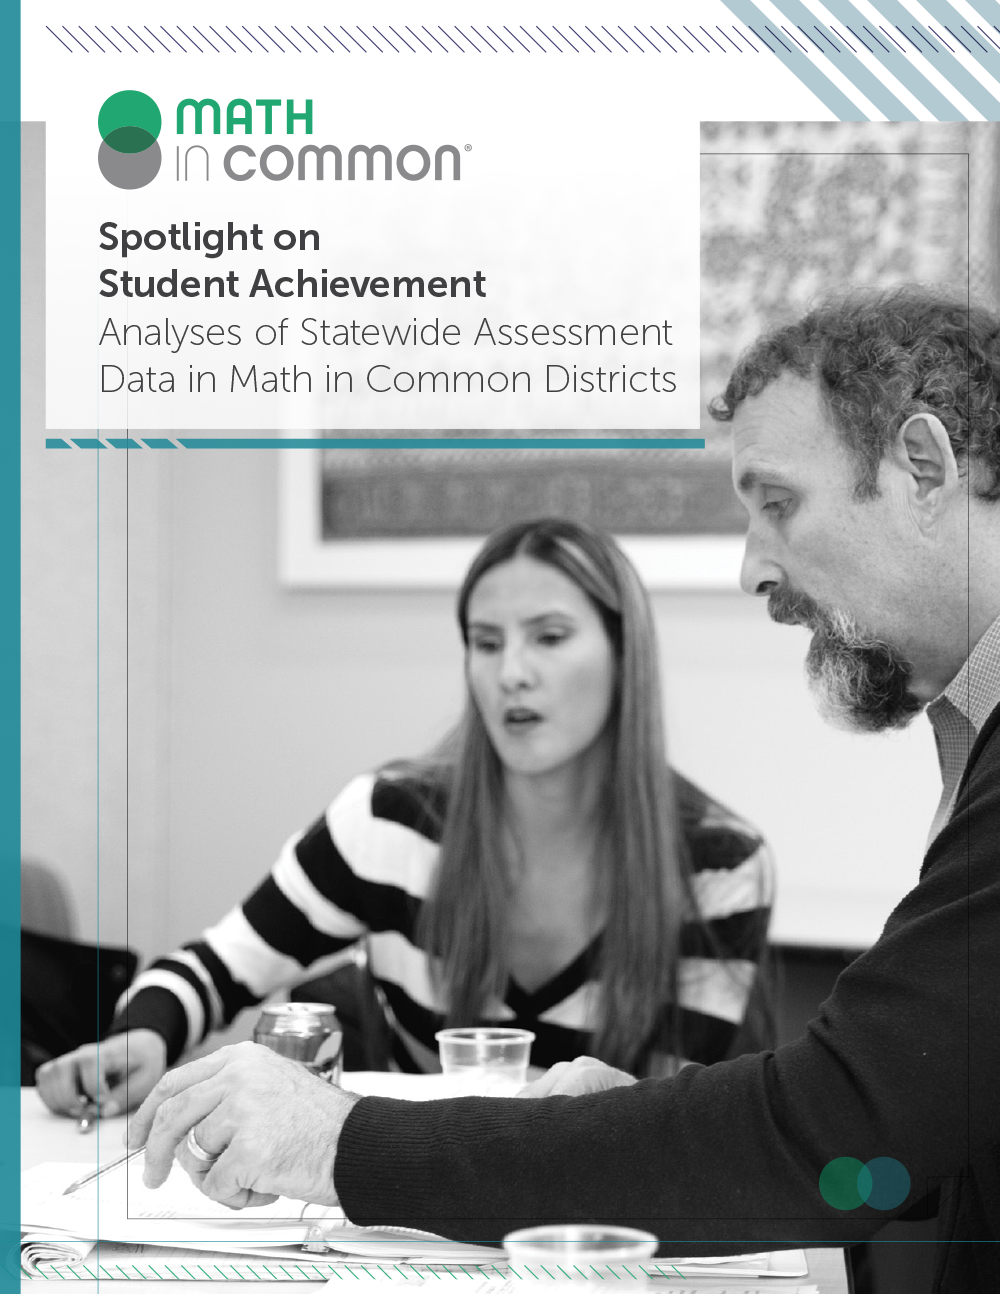 Spotlight on Student Achievement: Analyses of Statewide Assessment Data in Math in Common Districts